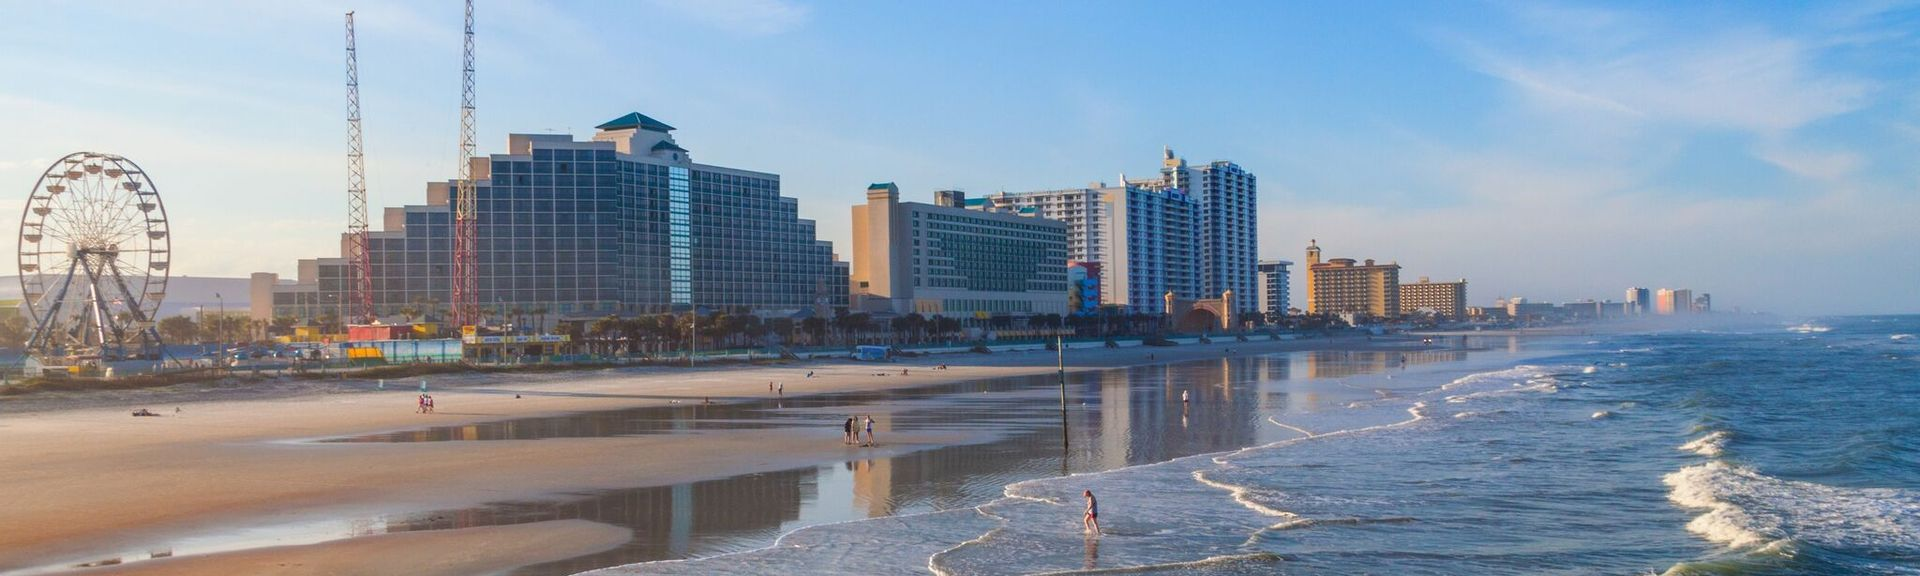 Daytona Beach, Florida, Estados Unidos